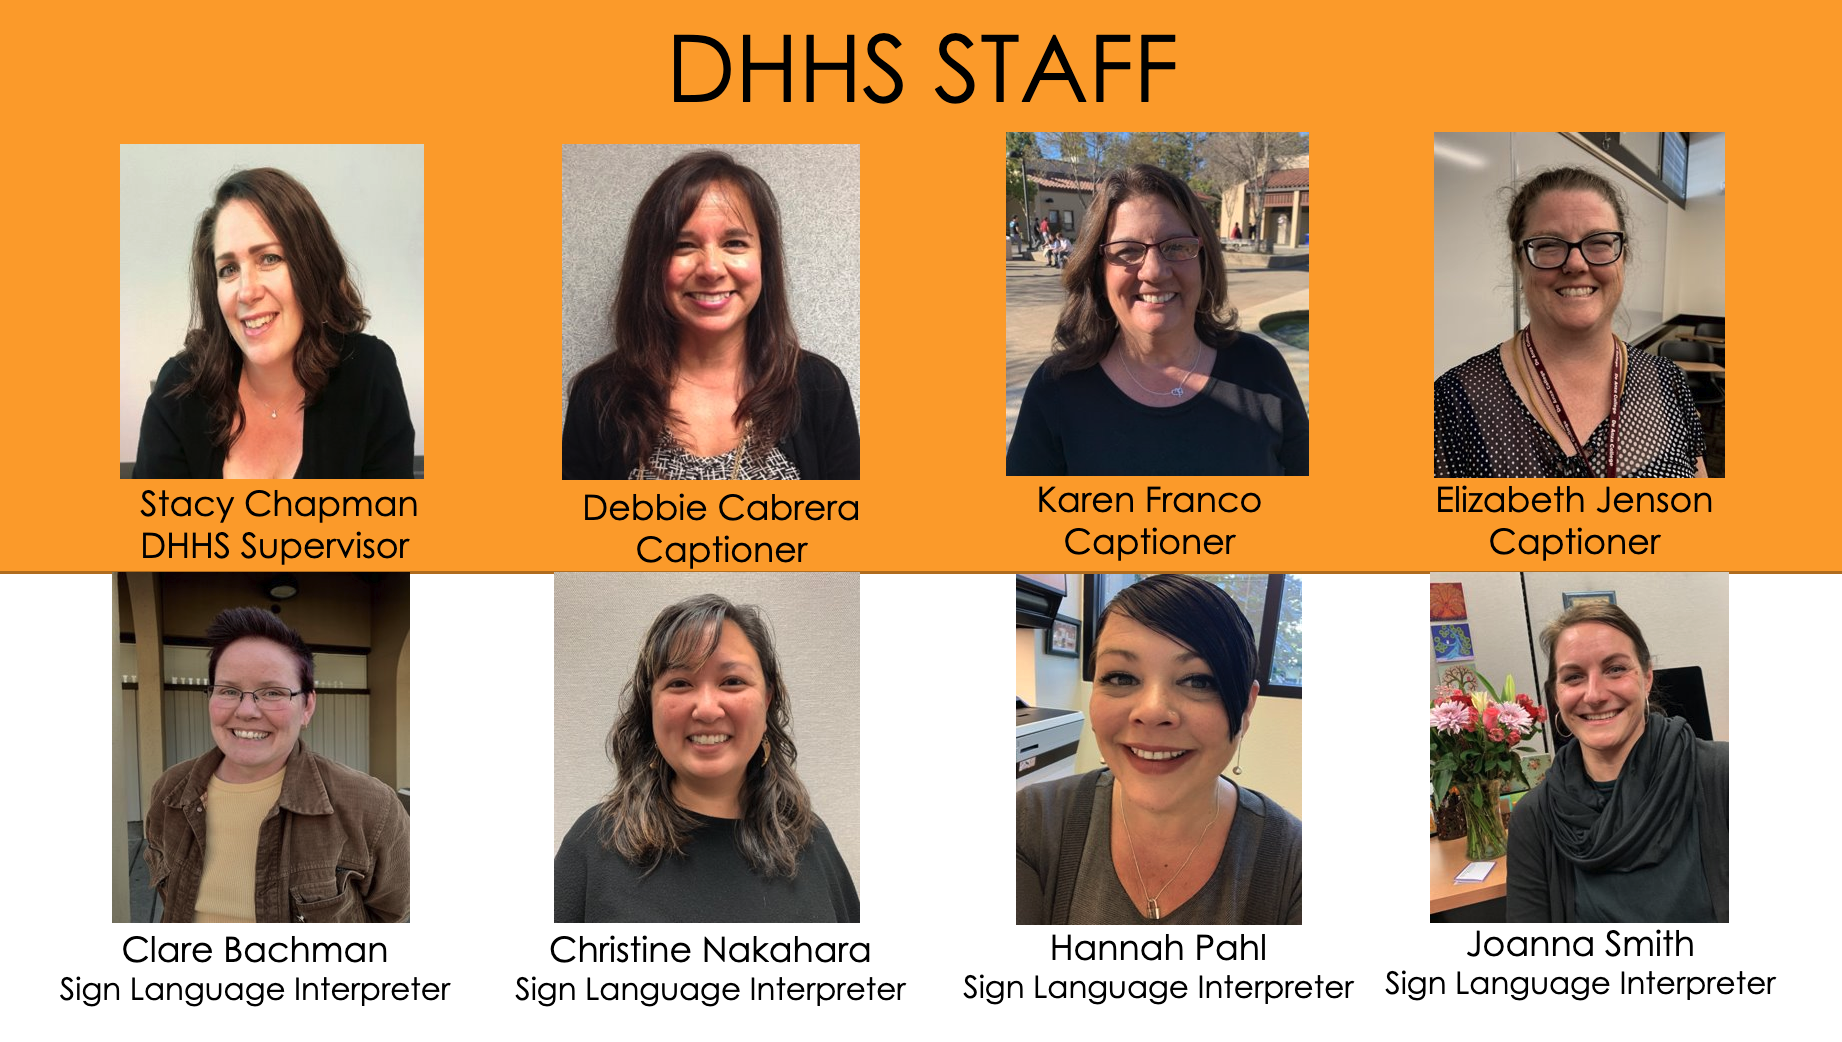 DHHS Staff Photos